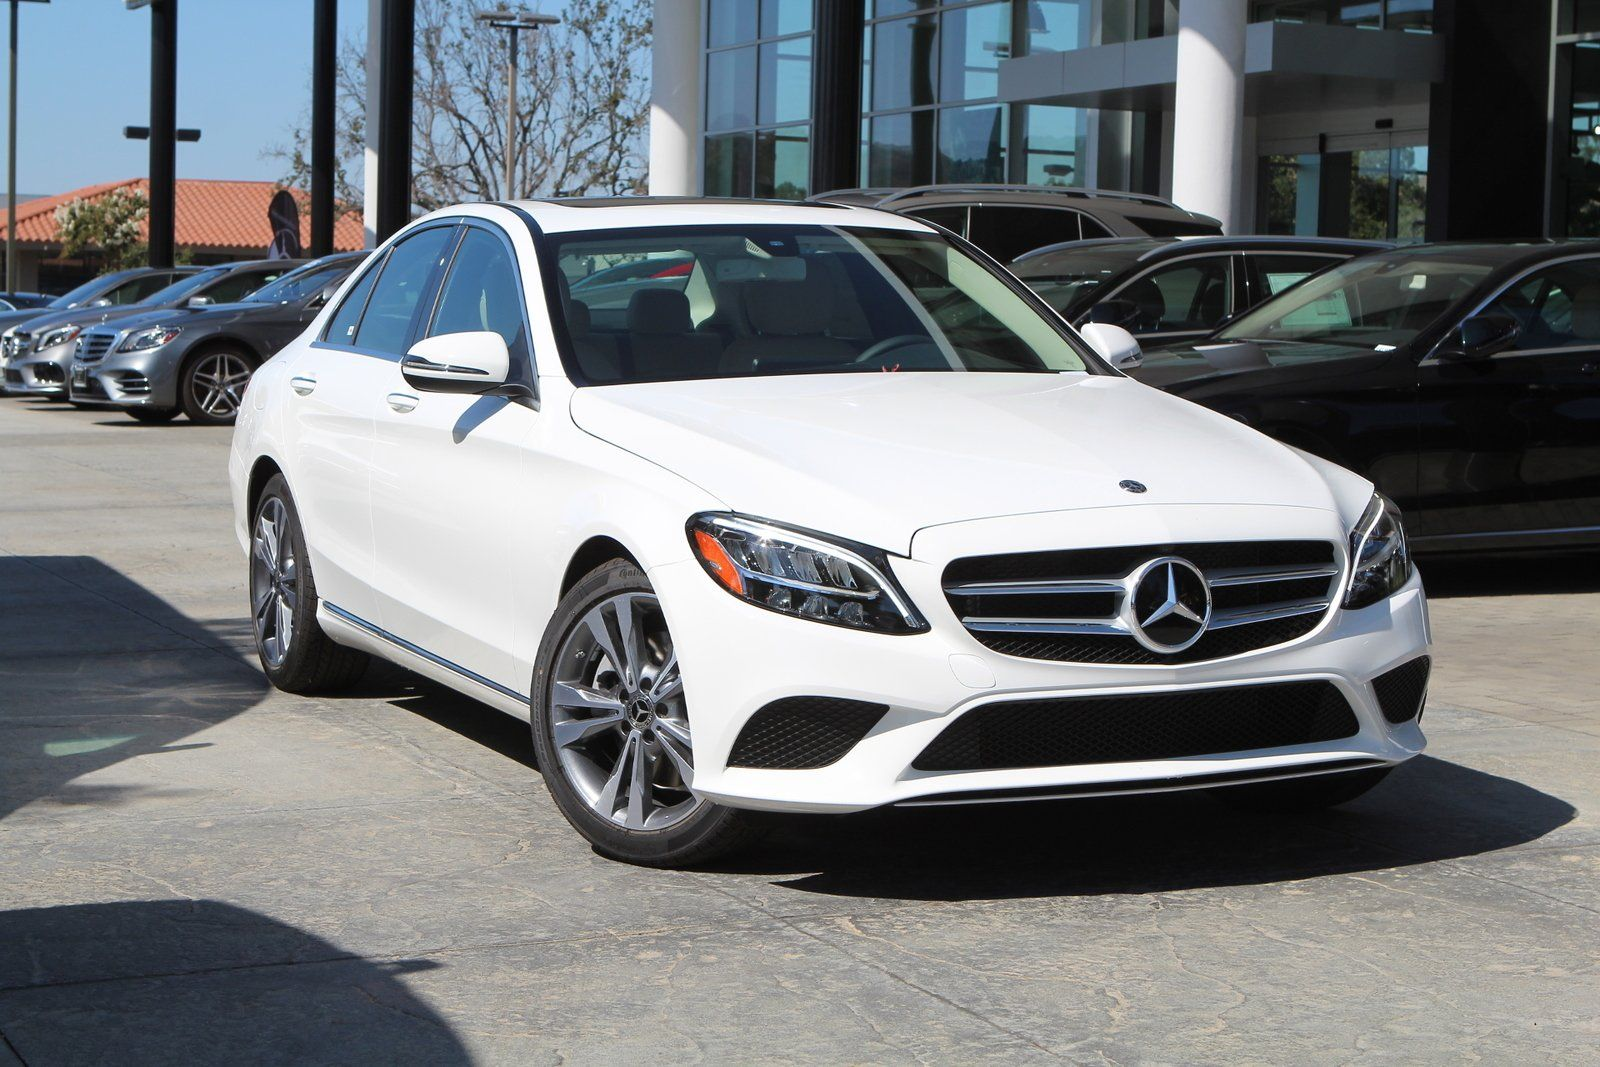 Our Most Exciting Purchase Lease Offers Mercedes Benz Of Temecula Mercedes Benz Benz Mercedes